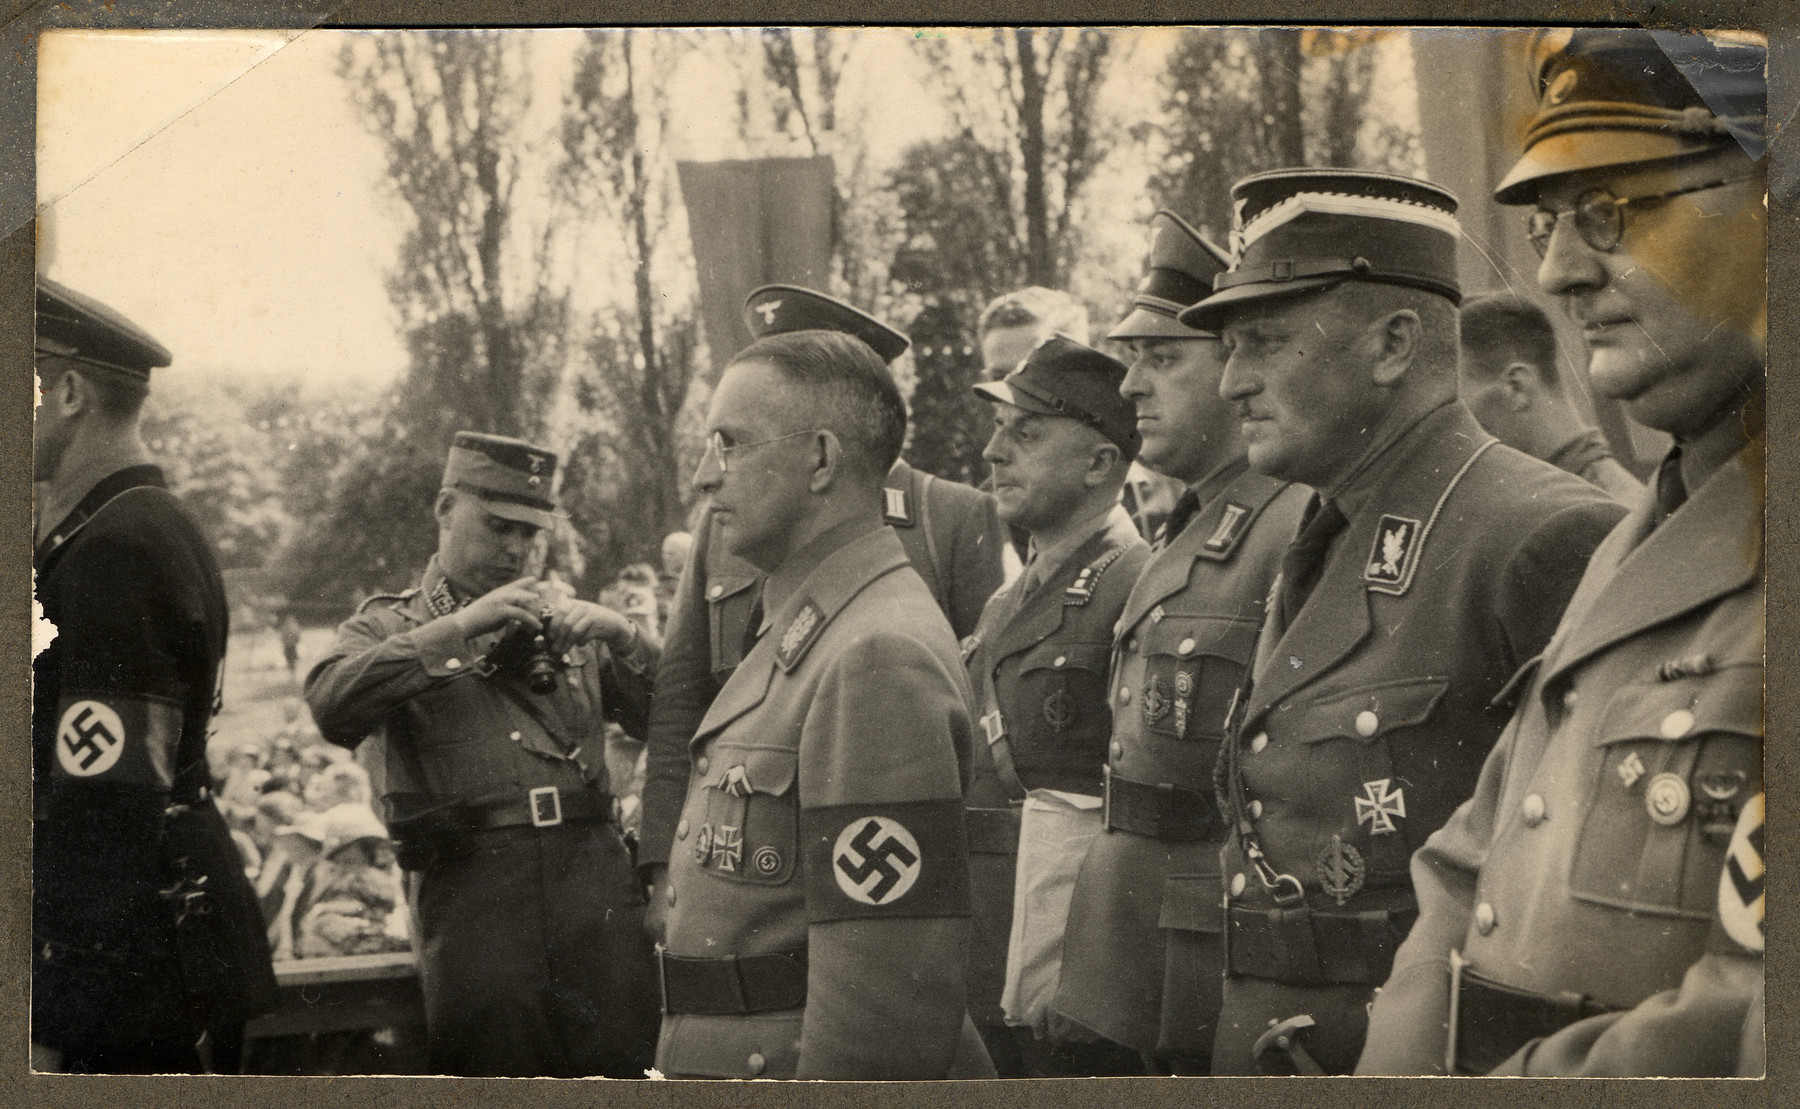 Nazi military officials meet at Gronau, a German town on the border of the Netherlands.  In profile, third from left, is Dr. Alfred Meyer, Gauleiter of Westfalen-Nord and future State Secretary in the Reich Ministry for the Occupied Eastern Territories.